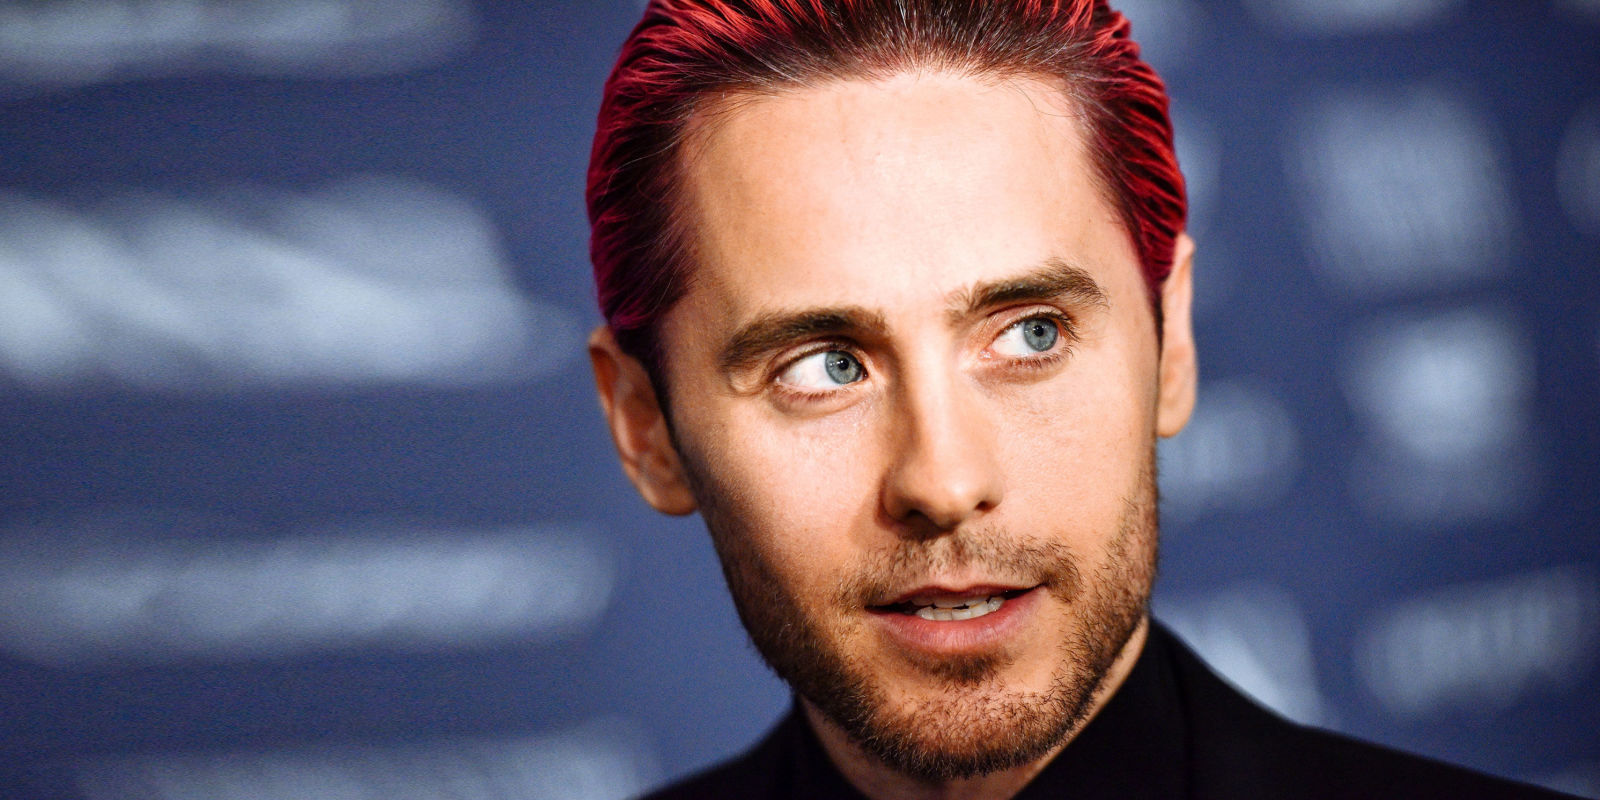 Never Fall In Love Wallpaper Jared Leto For Gucci Guilty Jared Leto Face Of Gucci